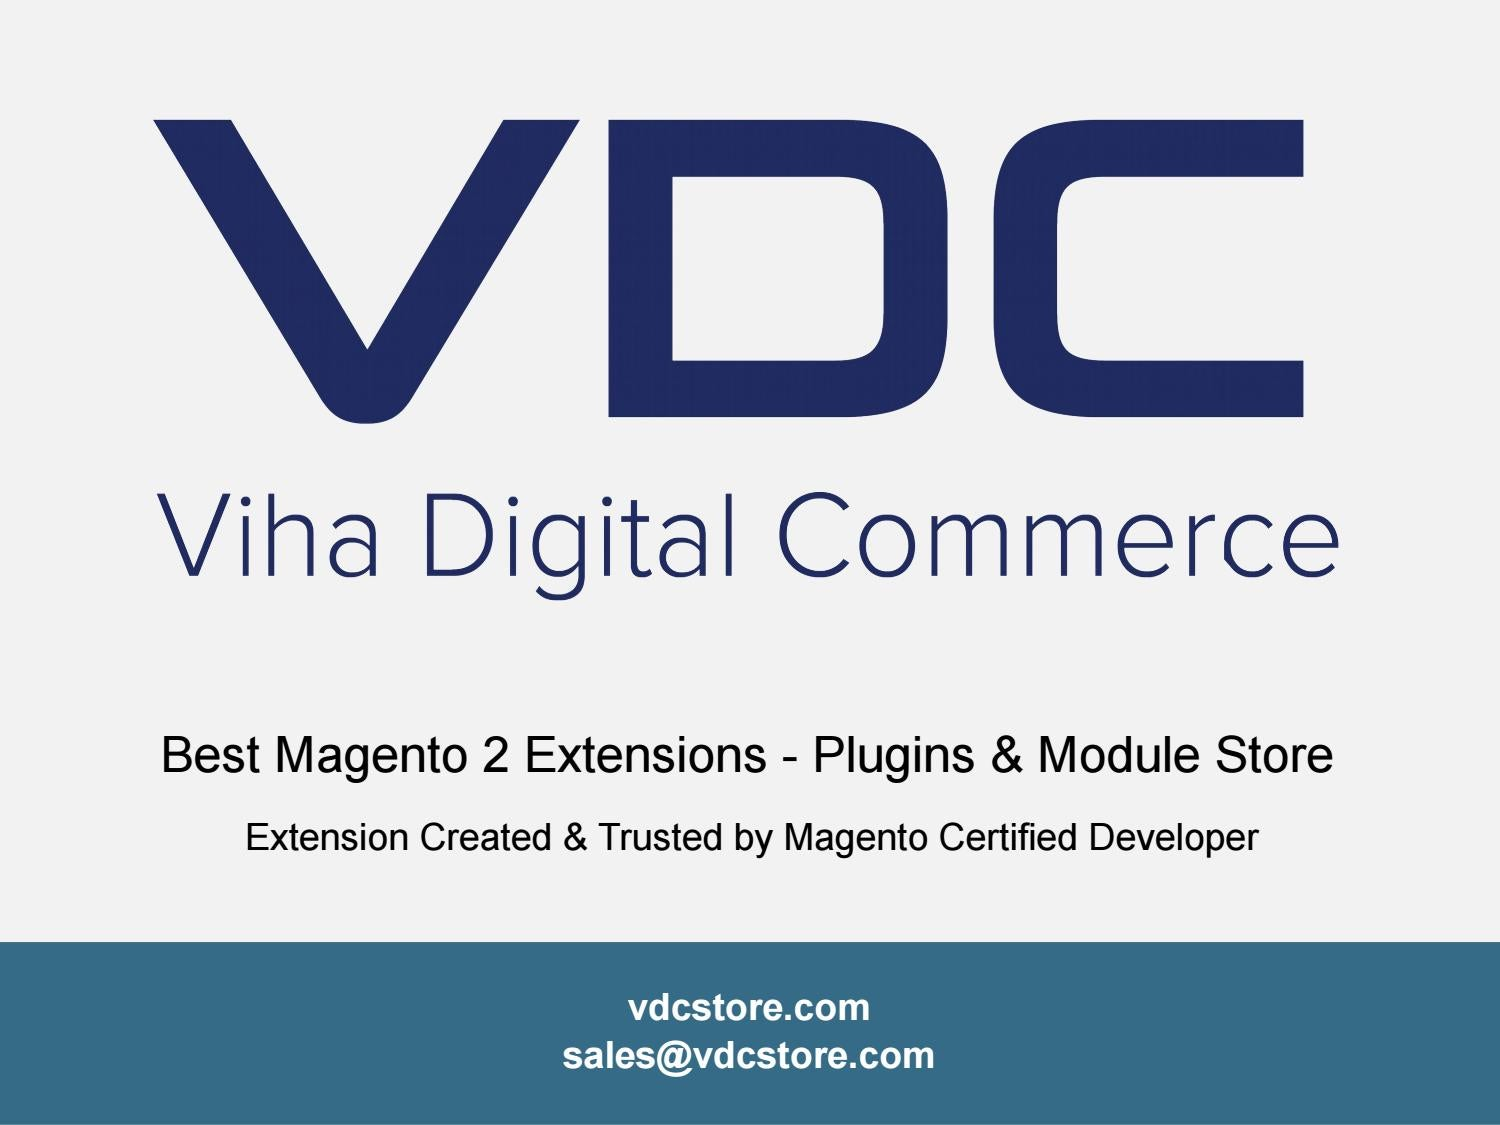 Most Affordable Magento 2 Extensions, Plugins and Support by VDC